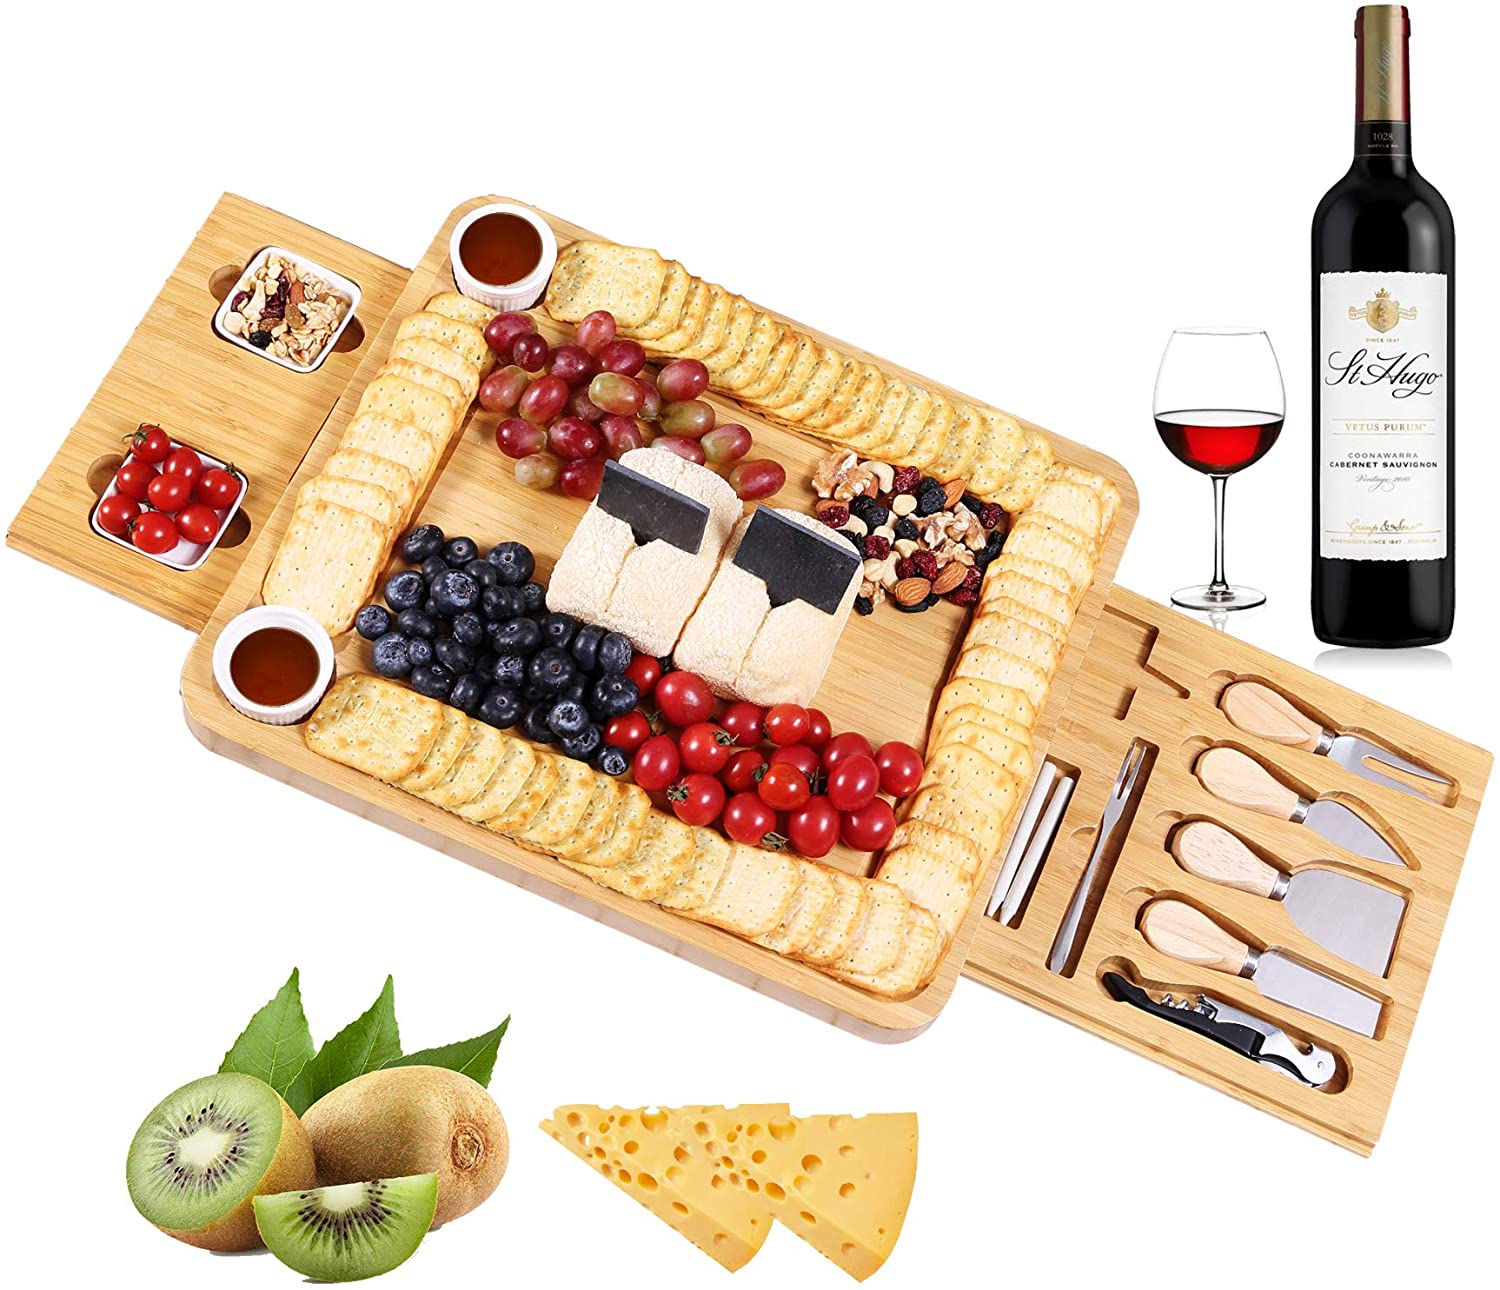 InnoStrive Cheese Board 100% Organic Bamboo Charcuterie Board 16 x 13 x 2 Inch Cheese Platter With Cutlery In Double Slide-Out Drawer For Wine, Cheese, Meat